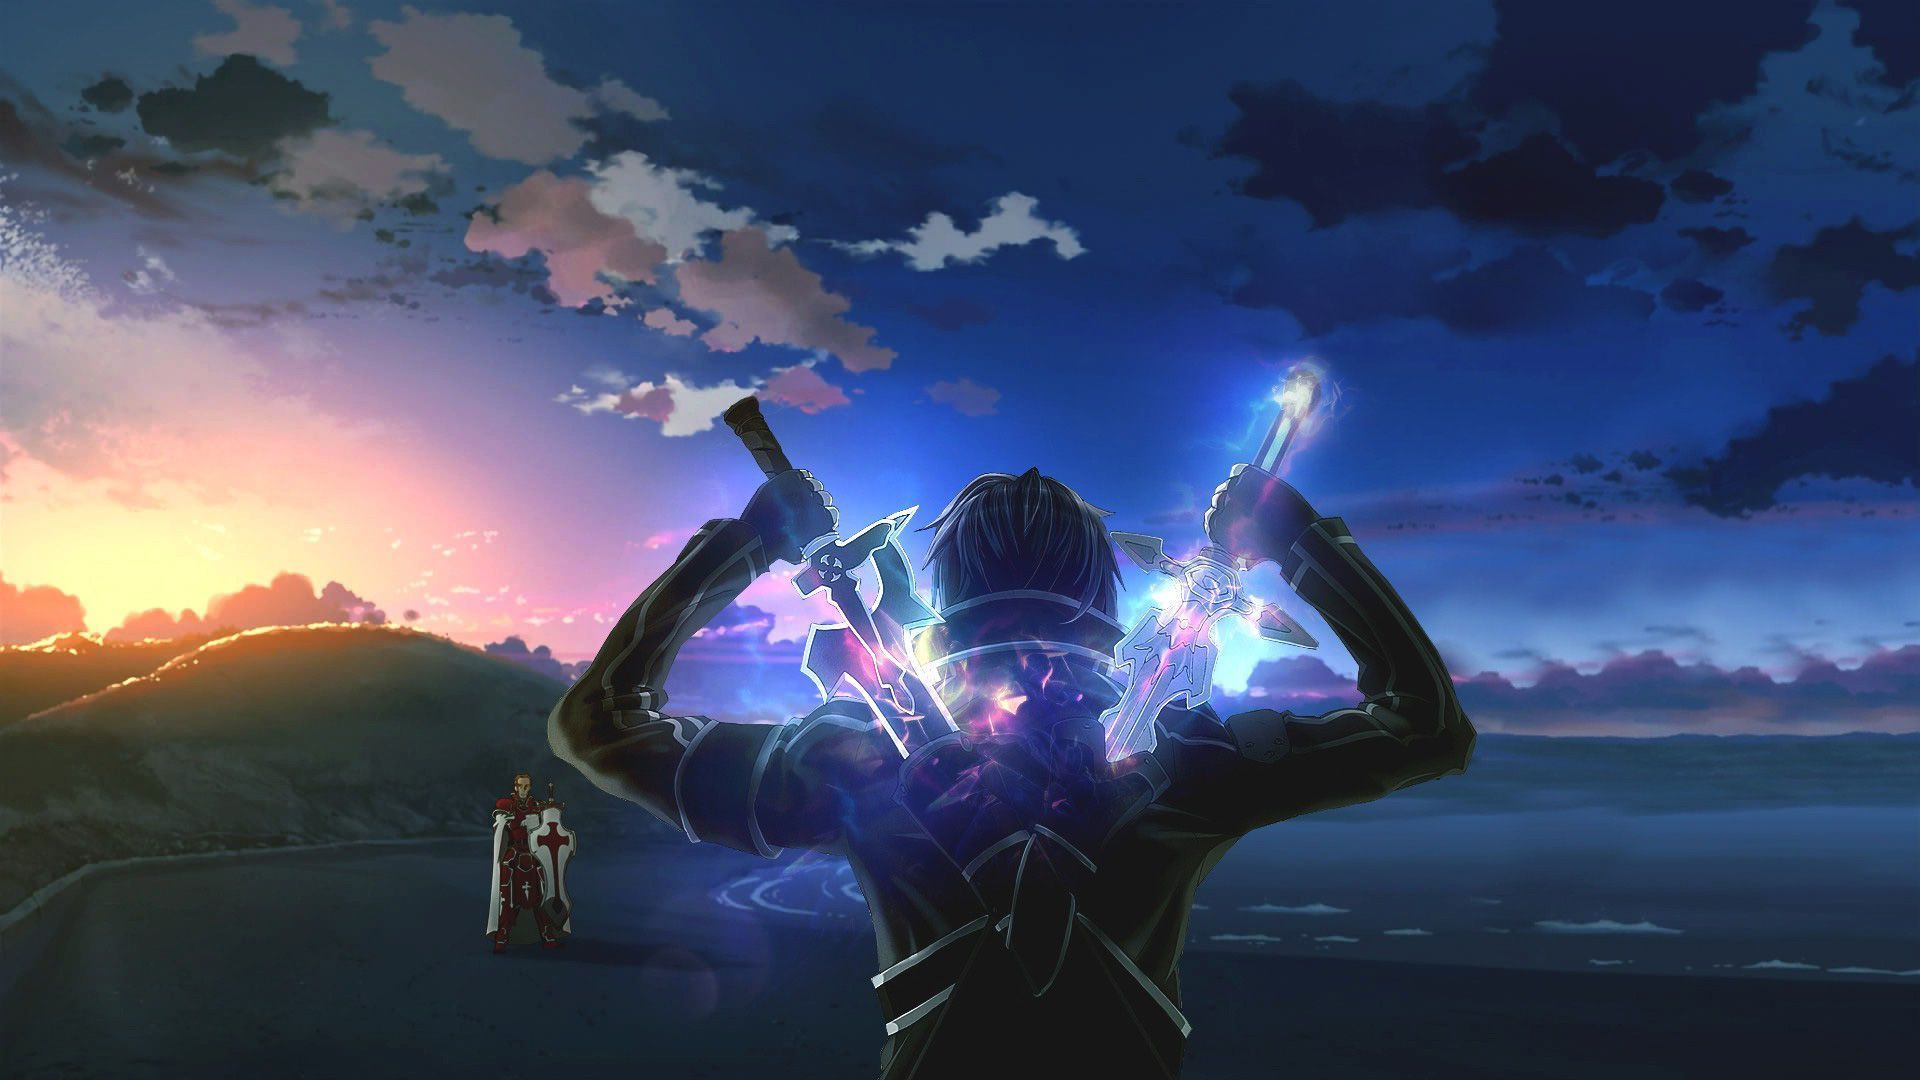 fight sword art online anime wallpaper | sword art online